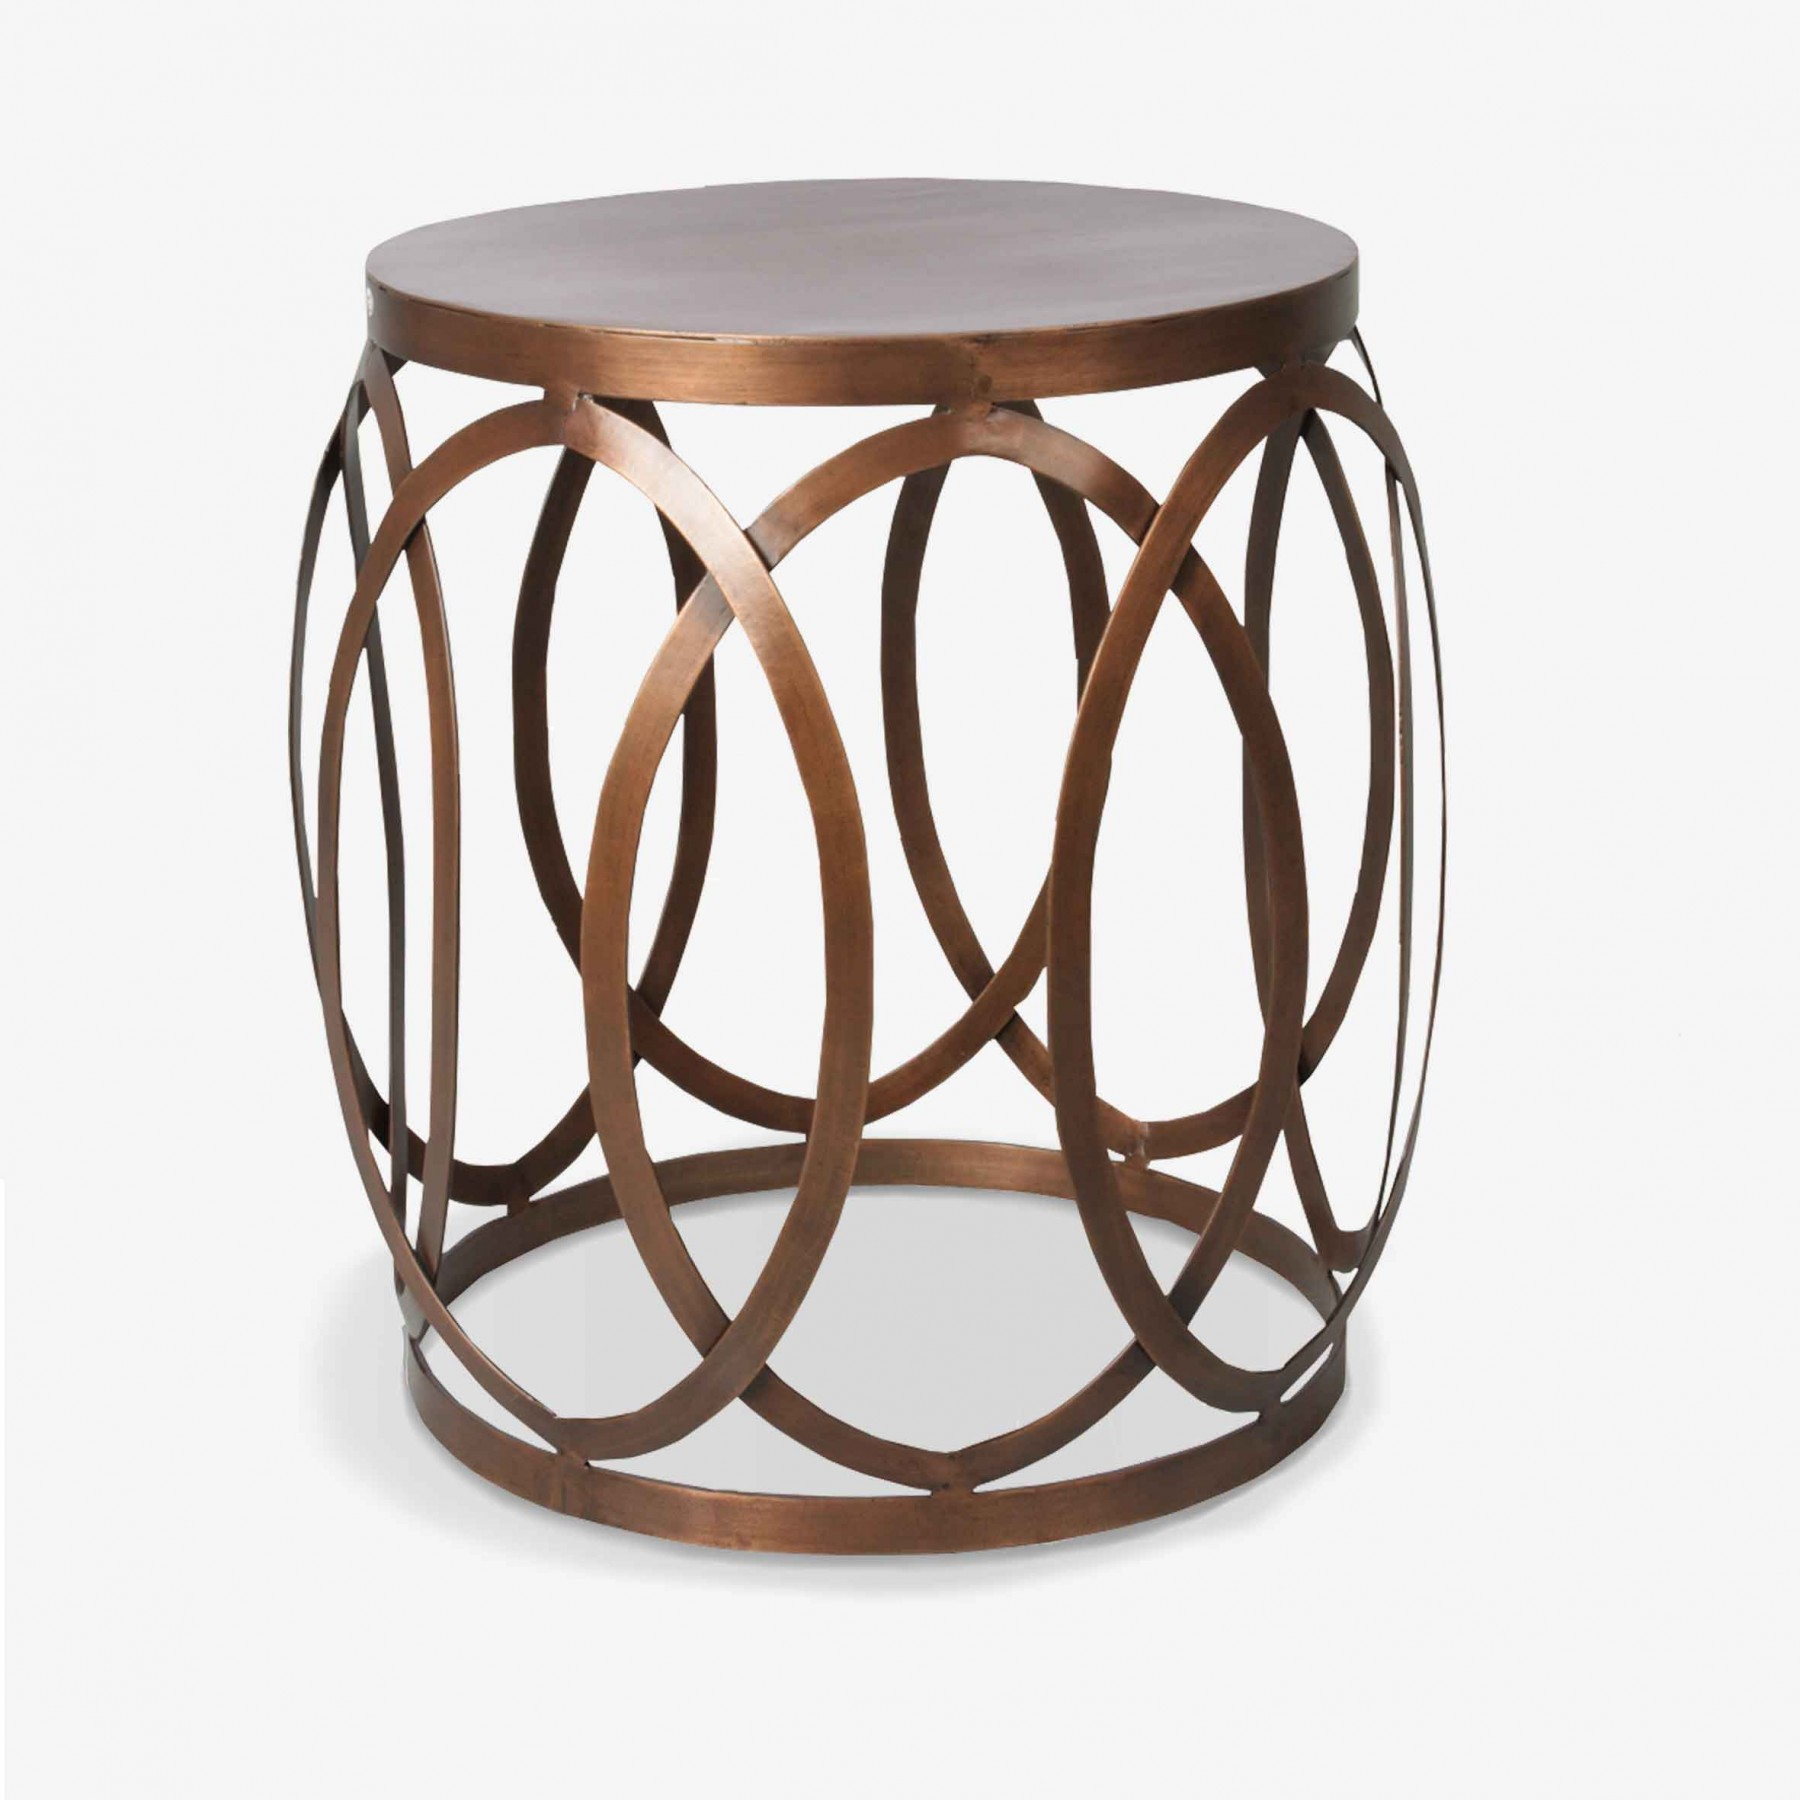 The copper cuff shiny side table th2studio for Table y copper